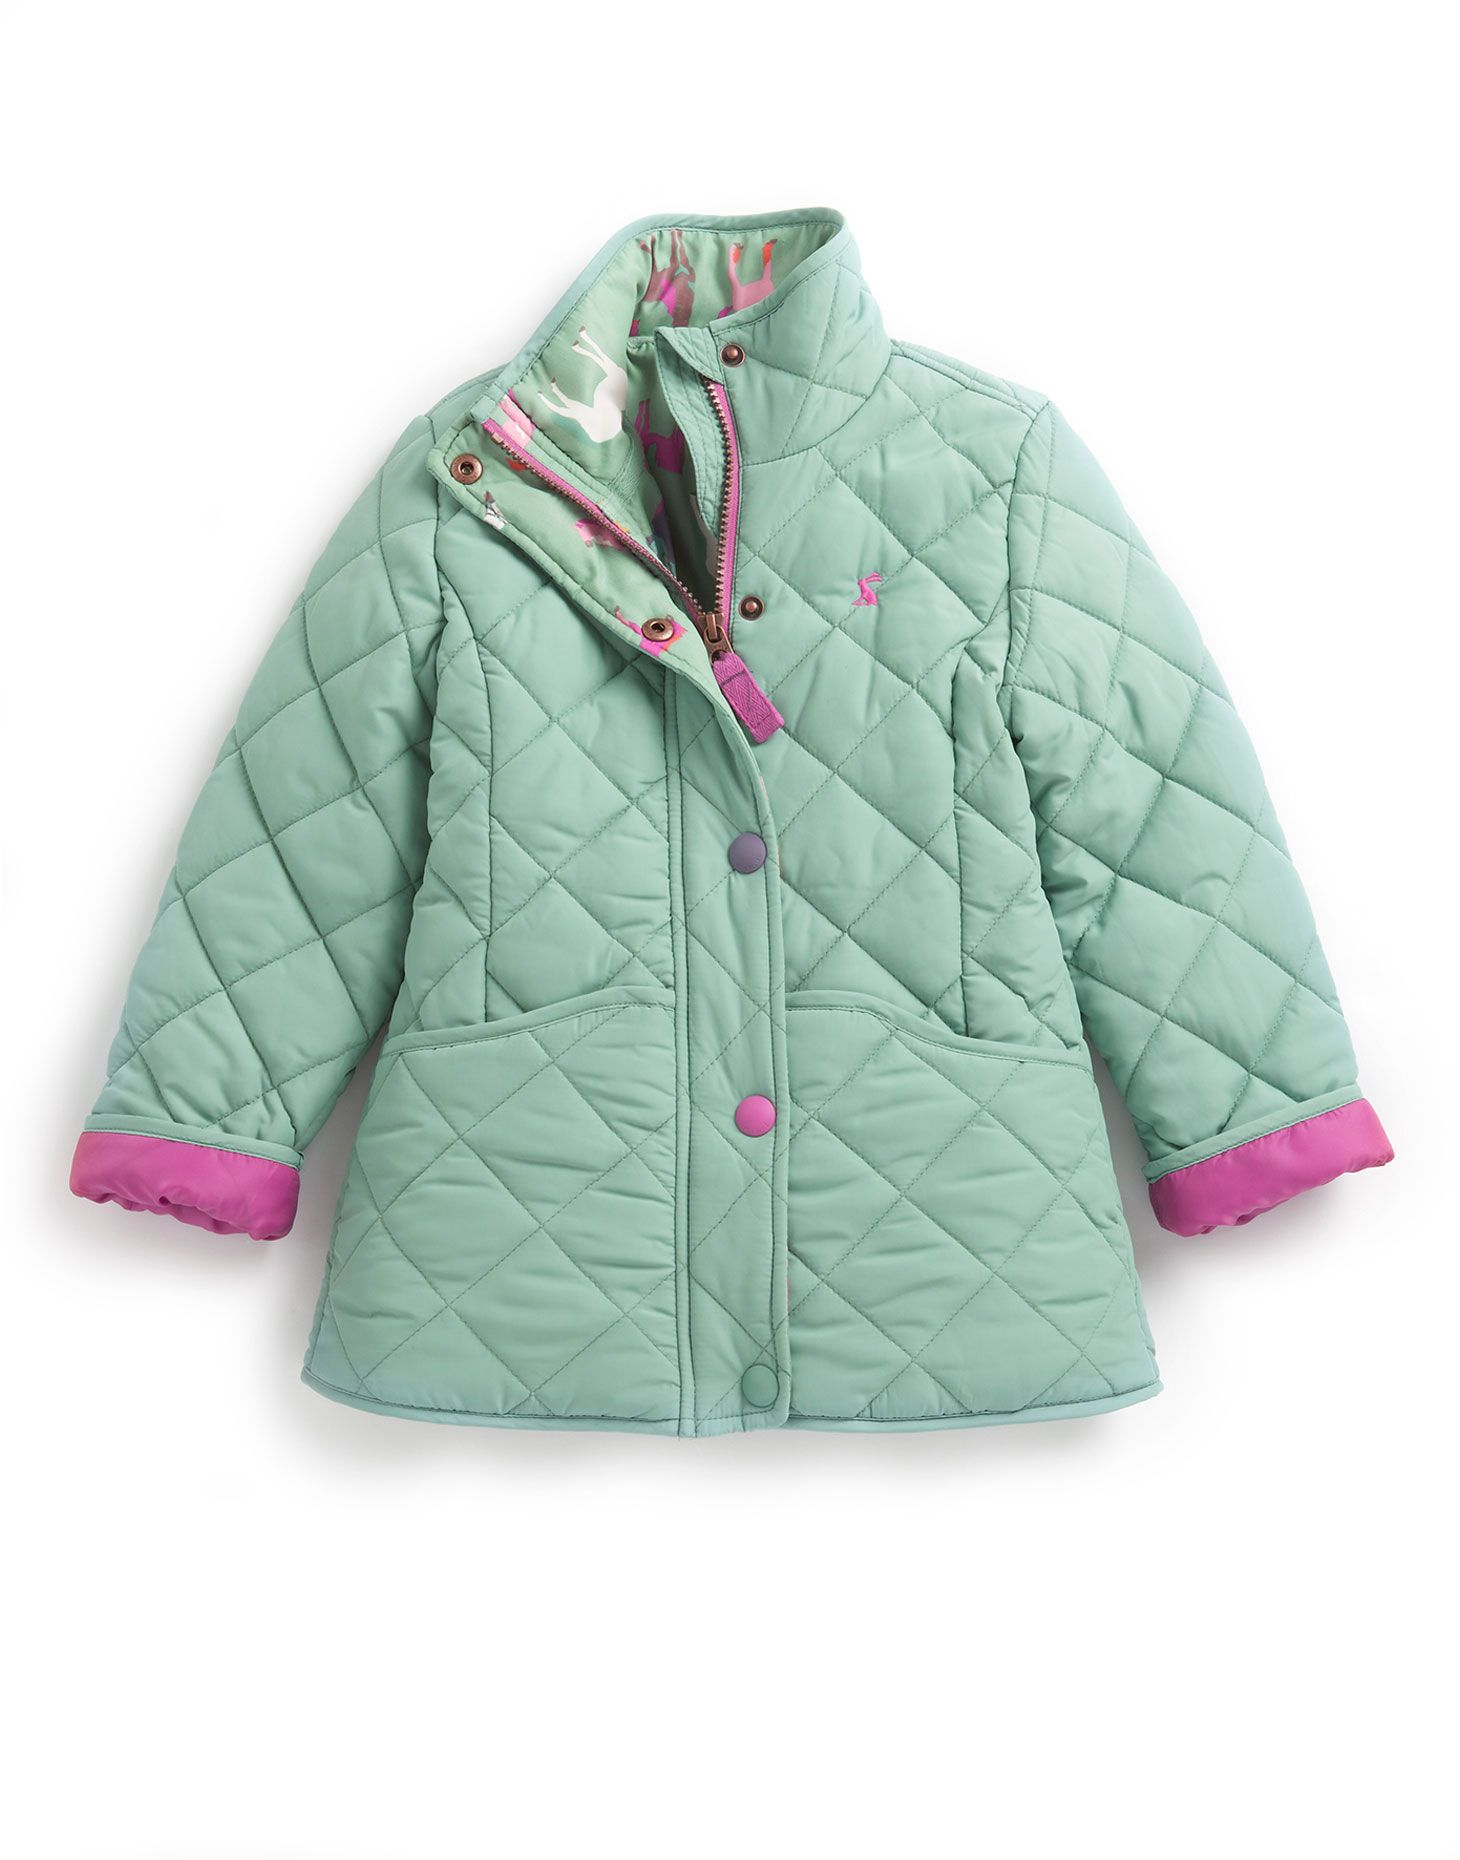 JNR MABEL Girls Quilted Jacket | Great for kids! | Pinterest ...